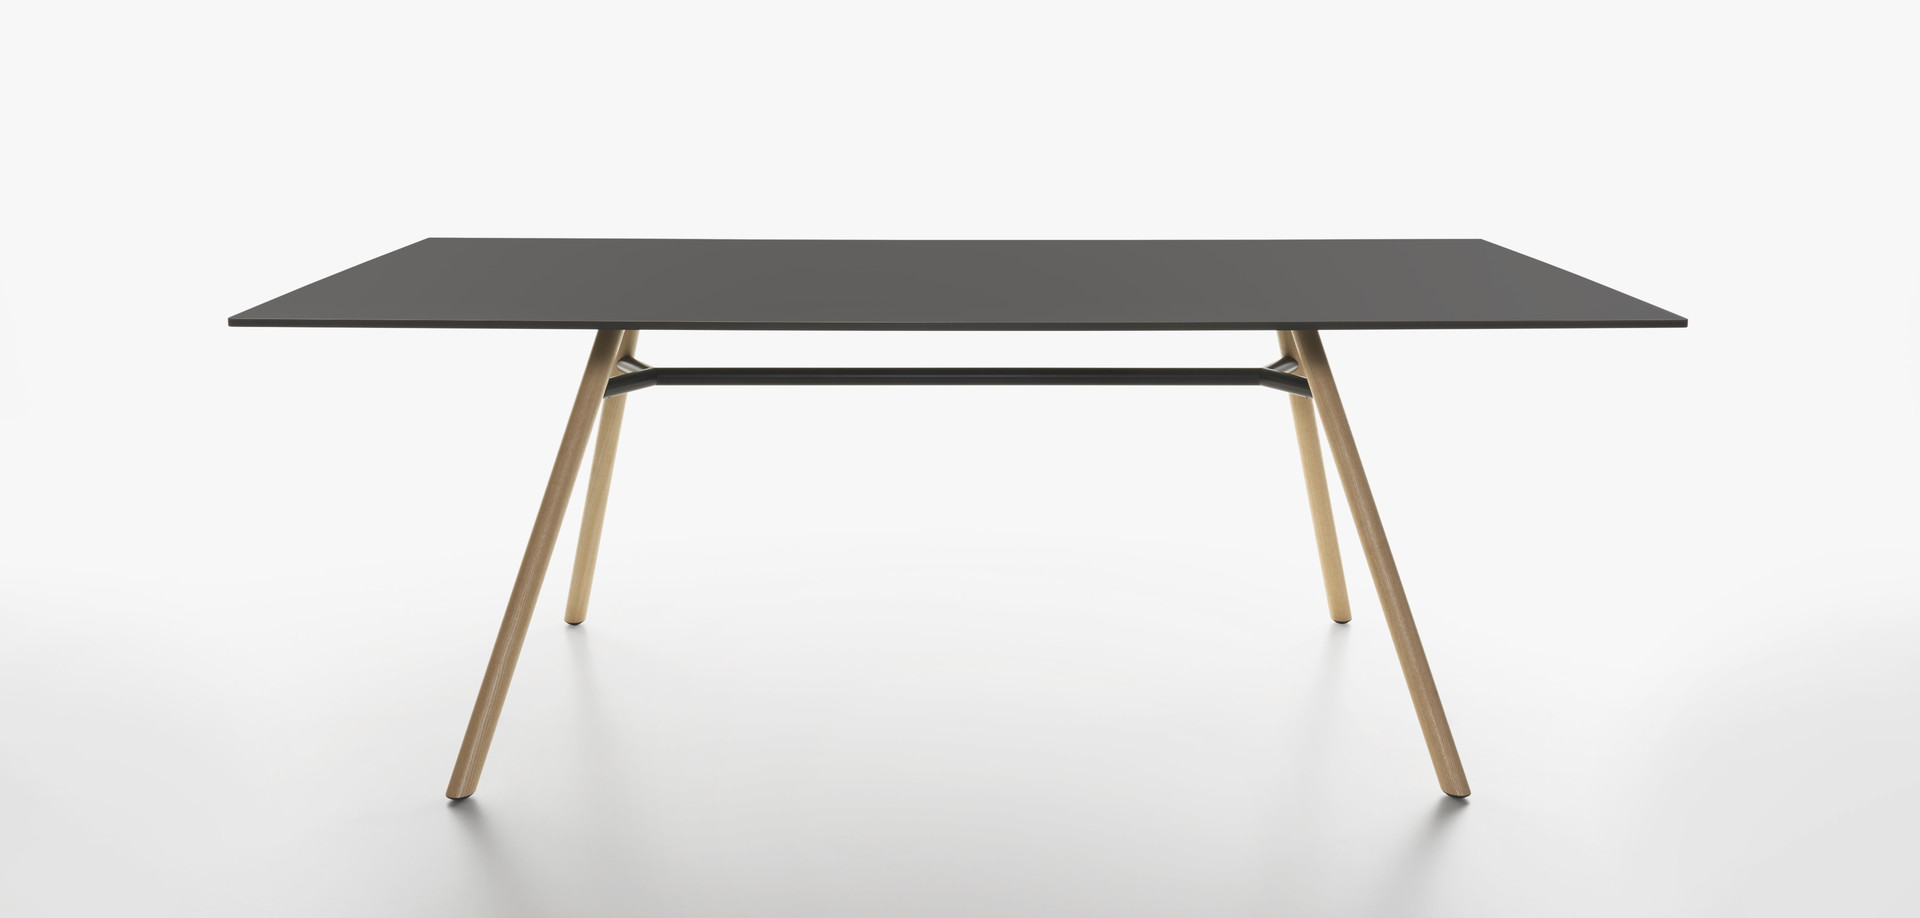 Plank - MART table, rectangular table top, natural ash legs, black HPL top